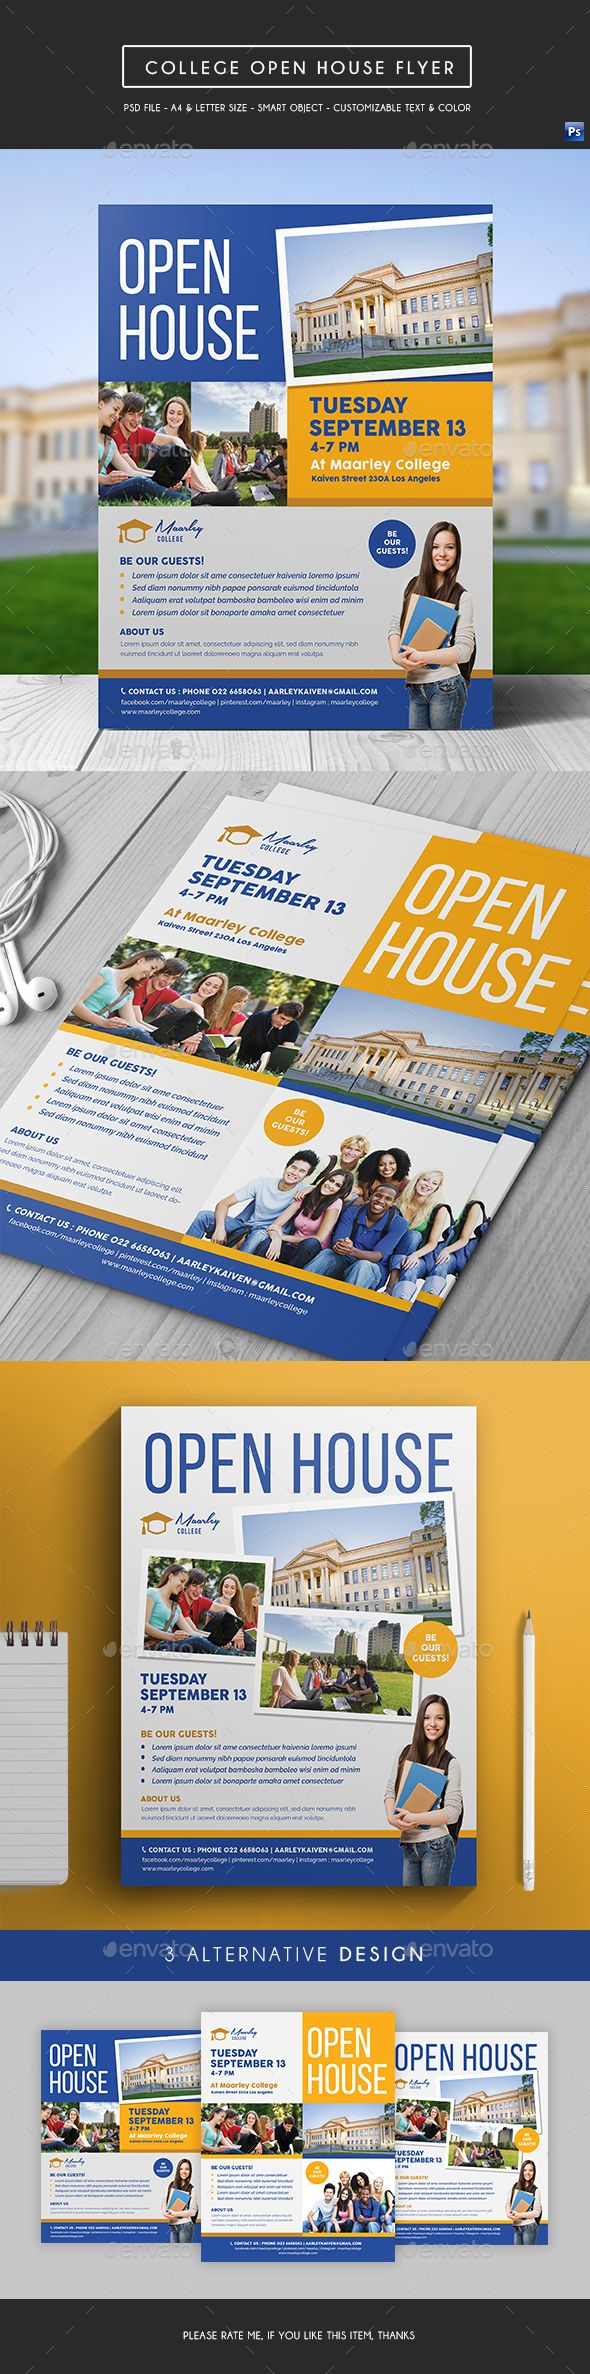 College Open House Flyer  Open House College And Flyer Template